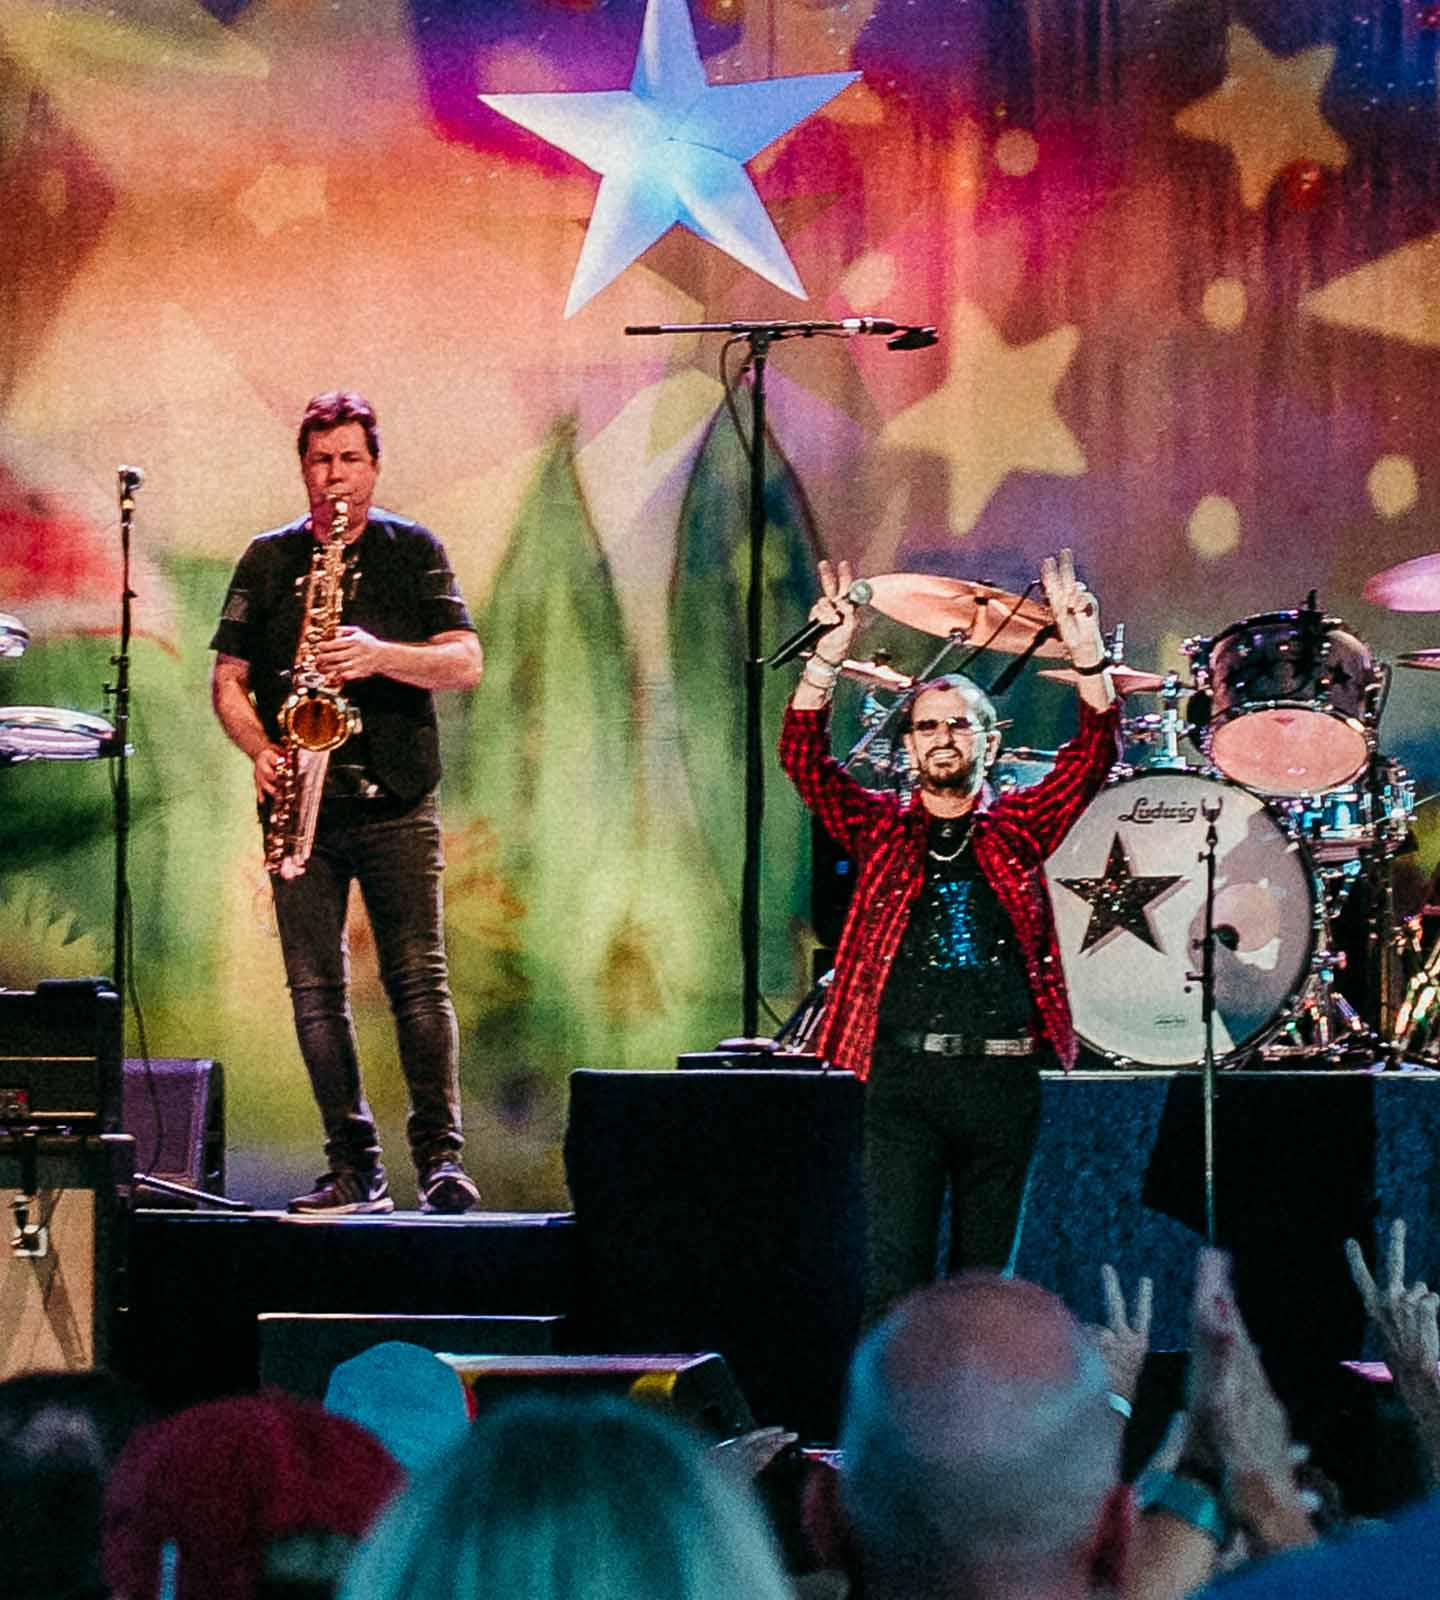 Ringo Starr concert photo 2